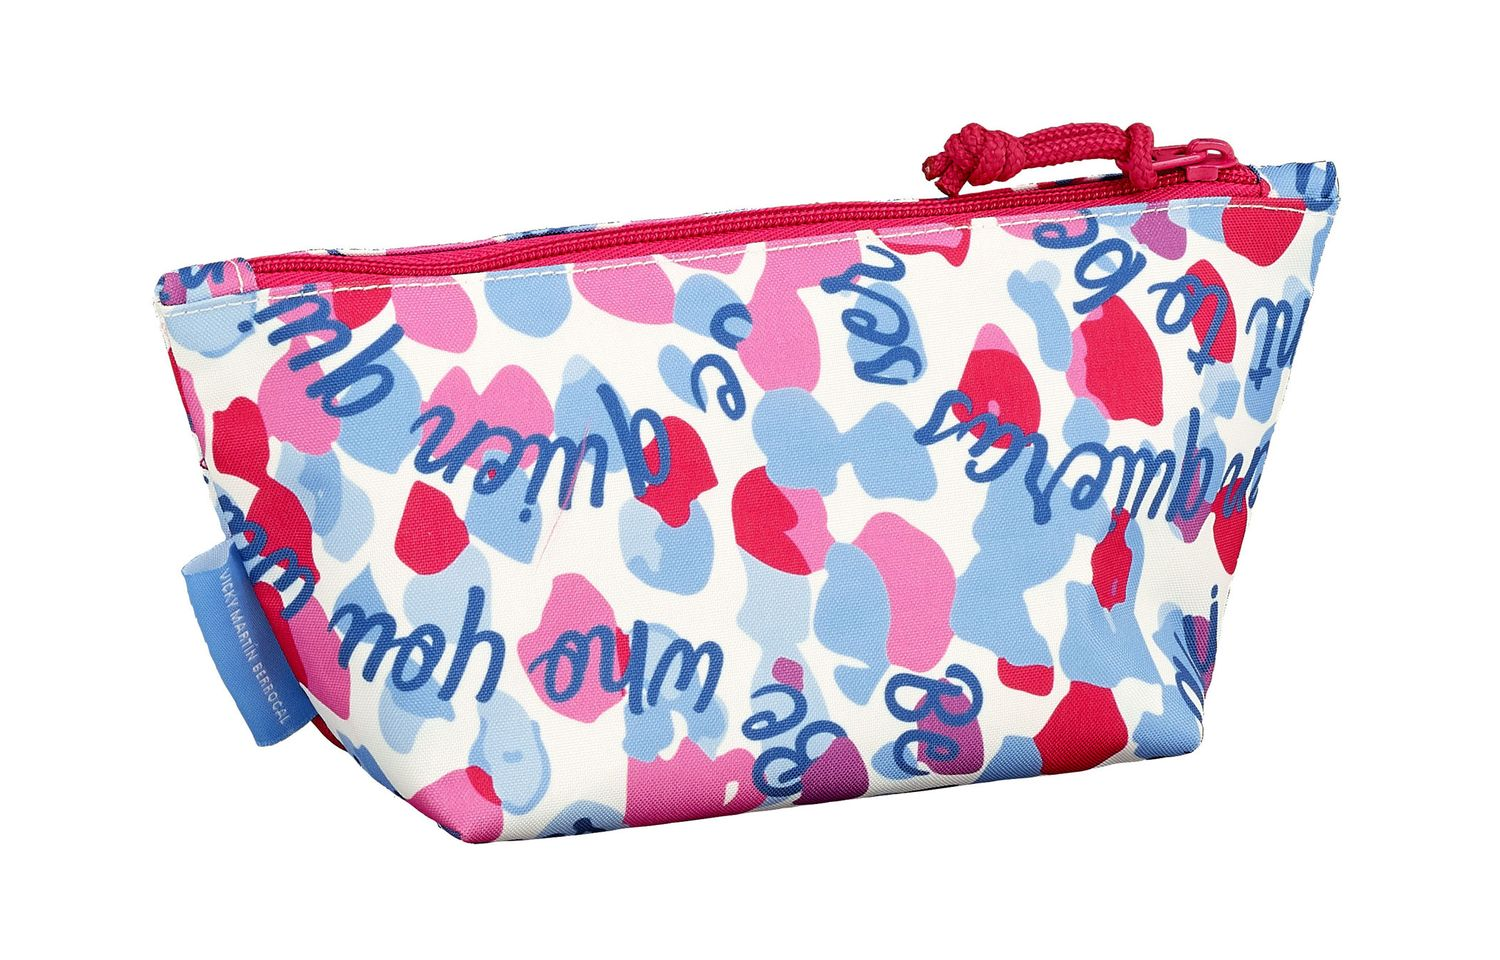 Make up Bag Vicky Martin Berrocal – image 2